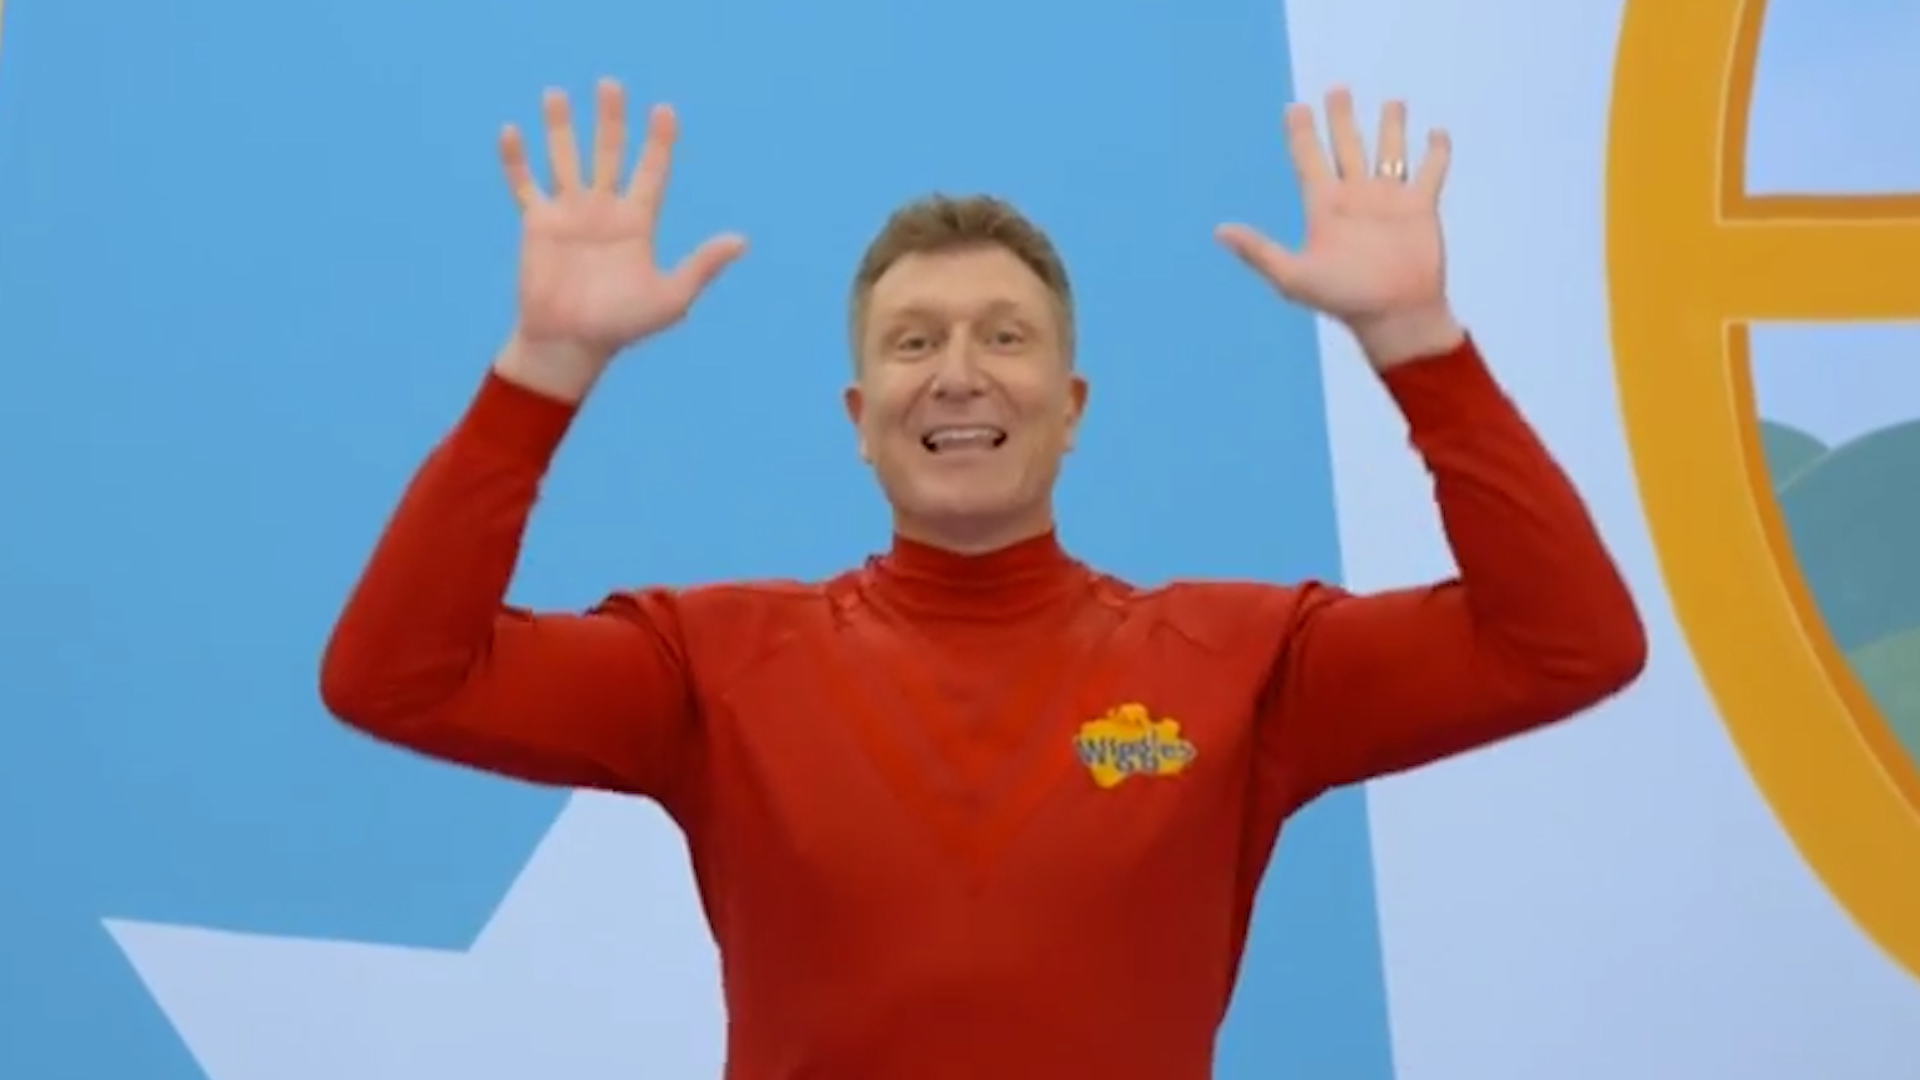 Follow the Leader by The Wiggles